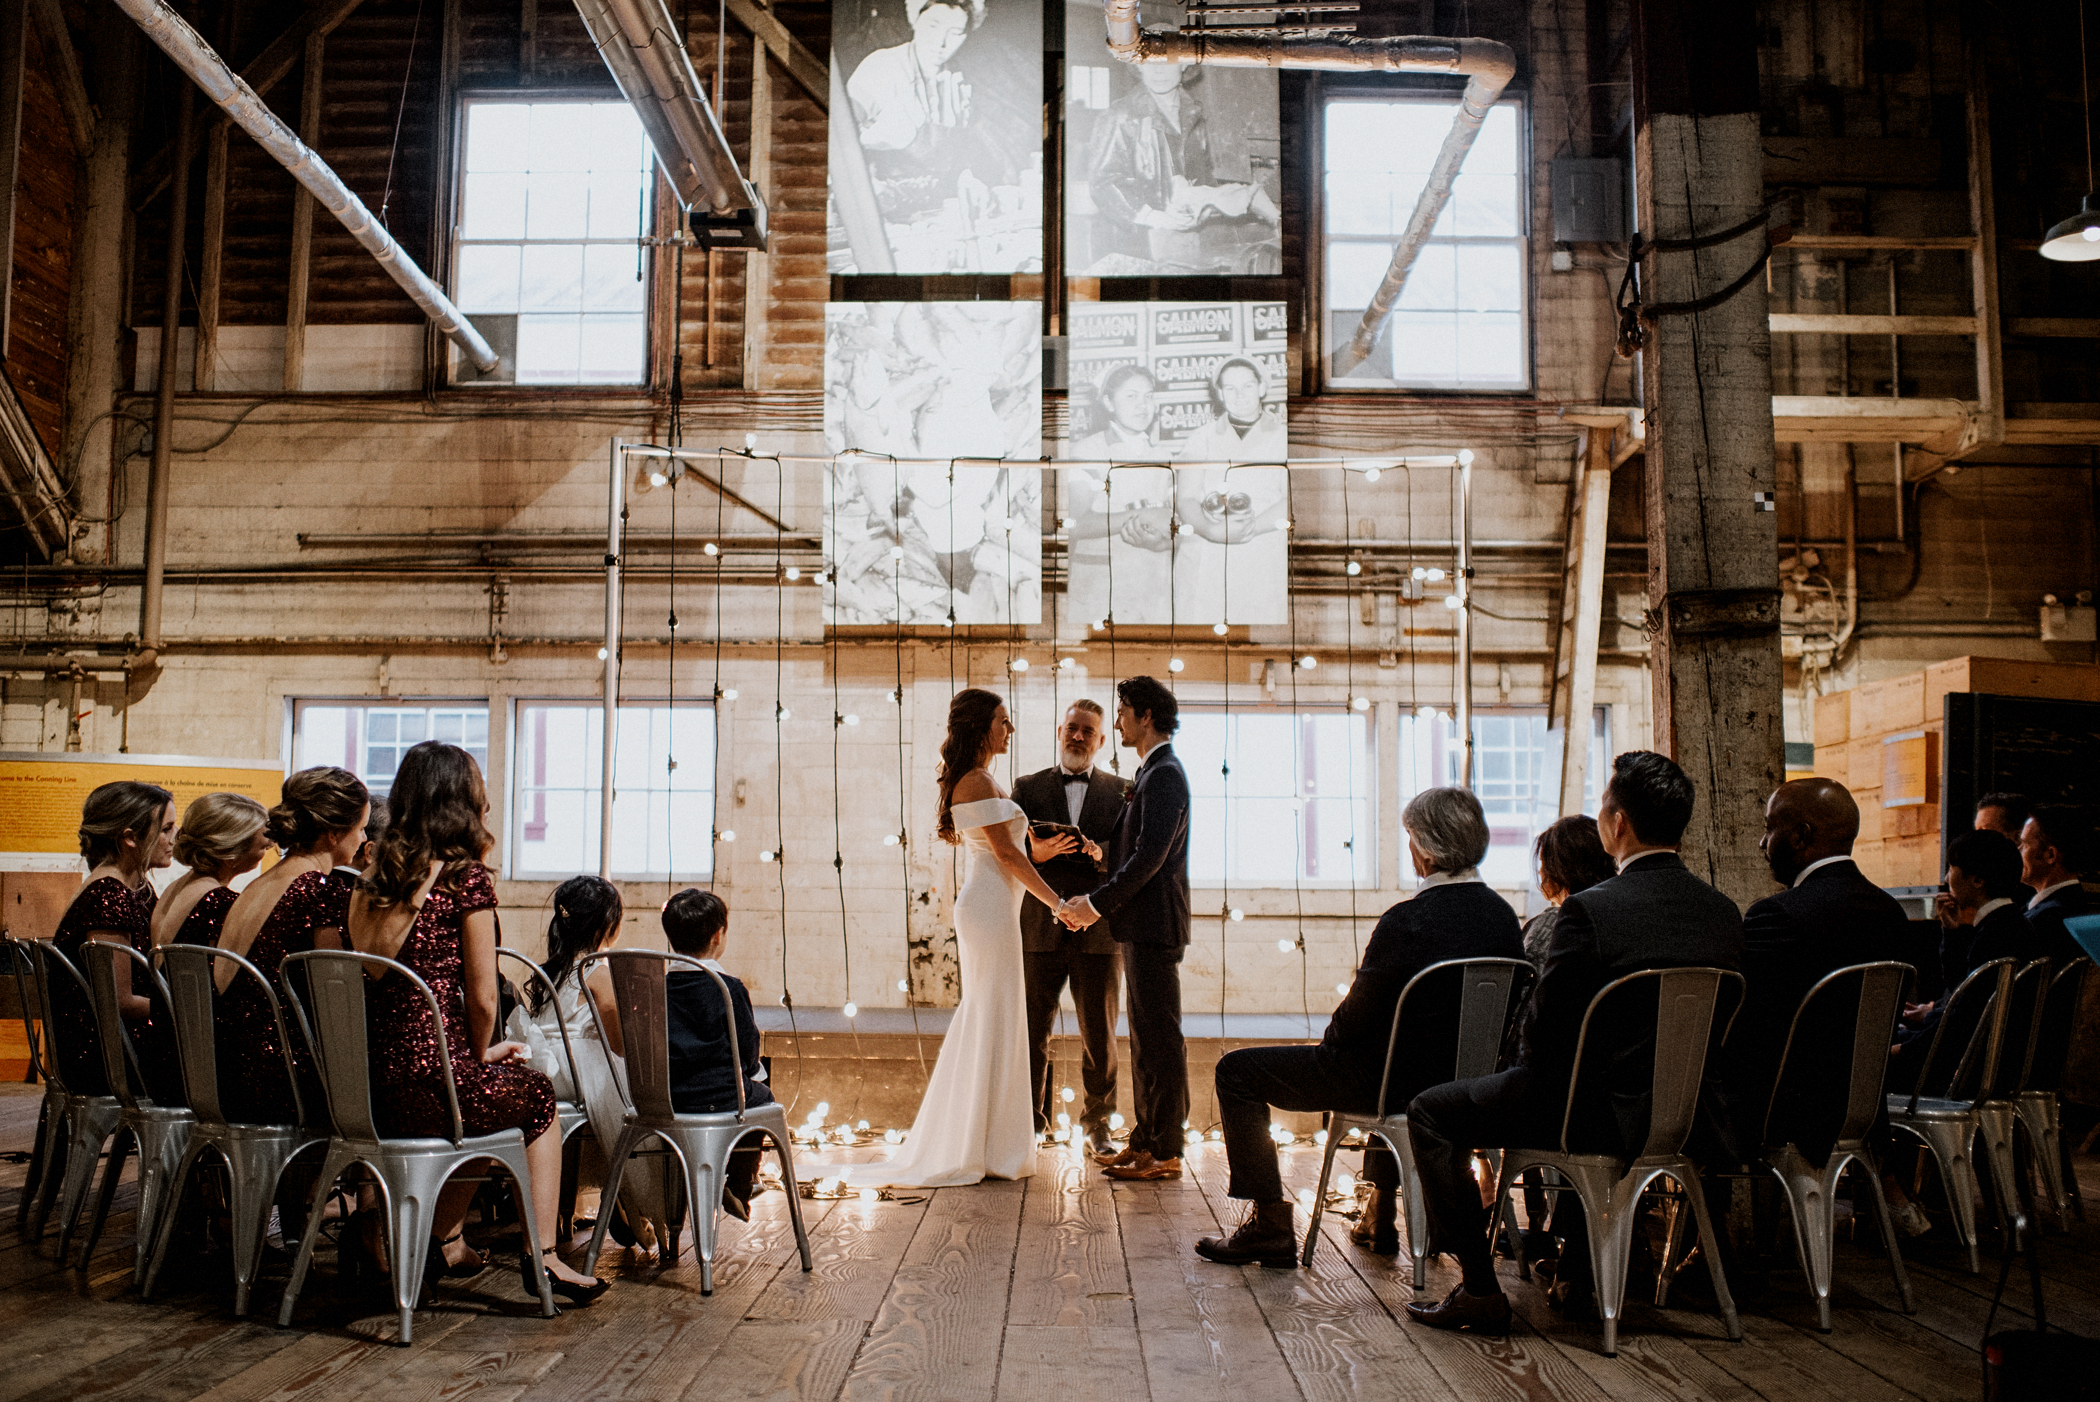 047-kaoverii-silva-MT-ubc-boathouse-industrial-wedding-photography-blog.png